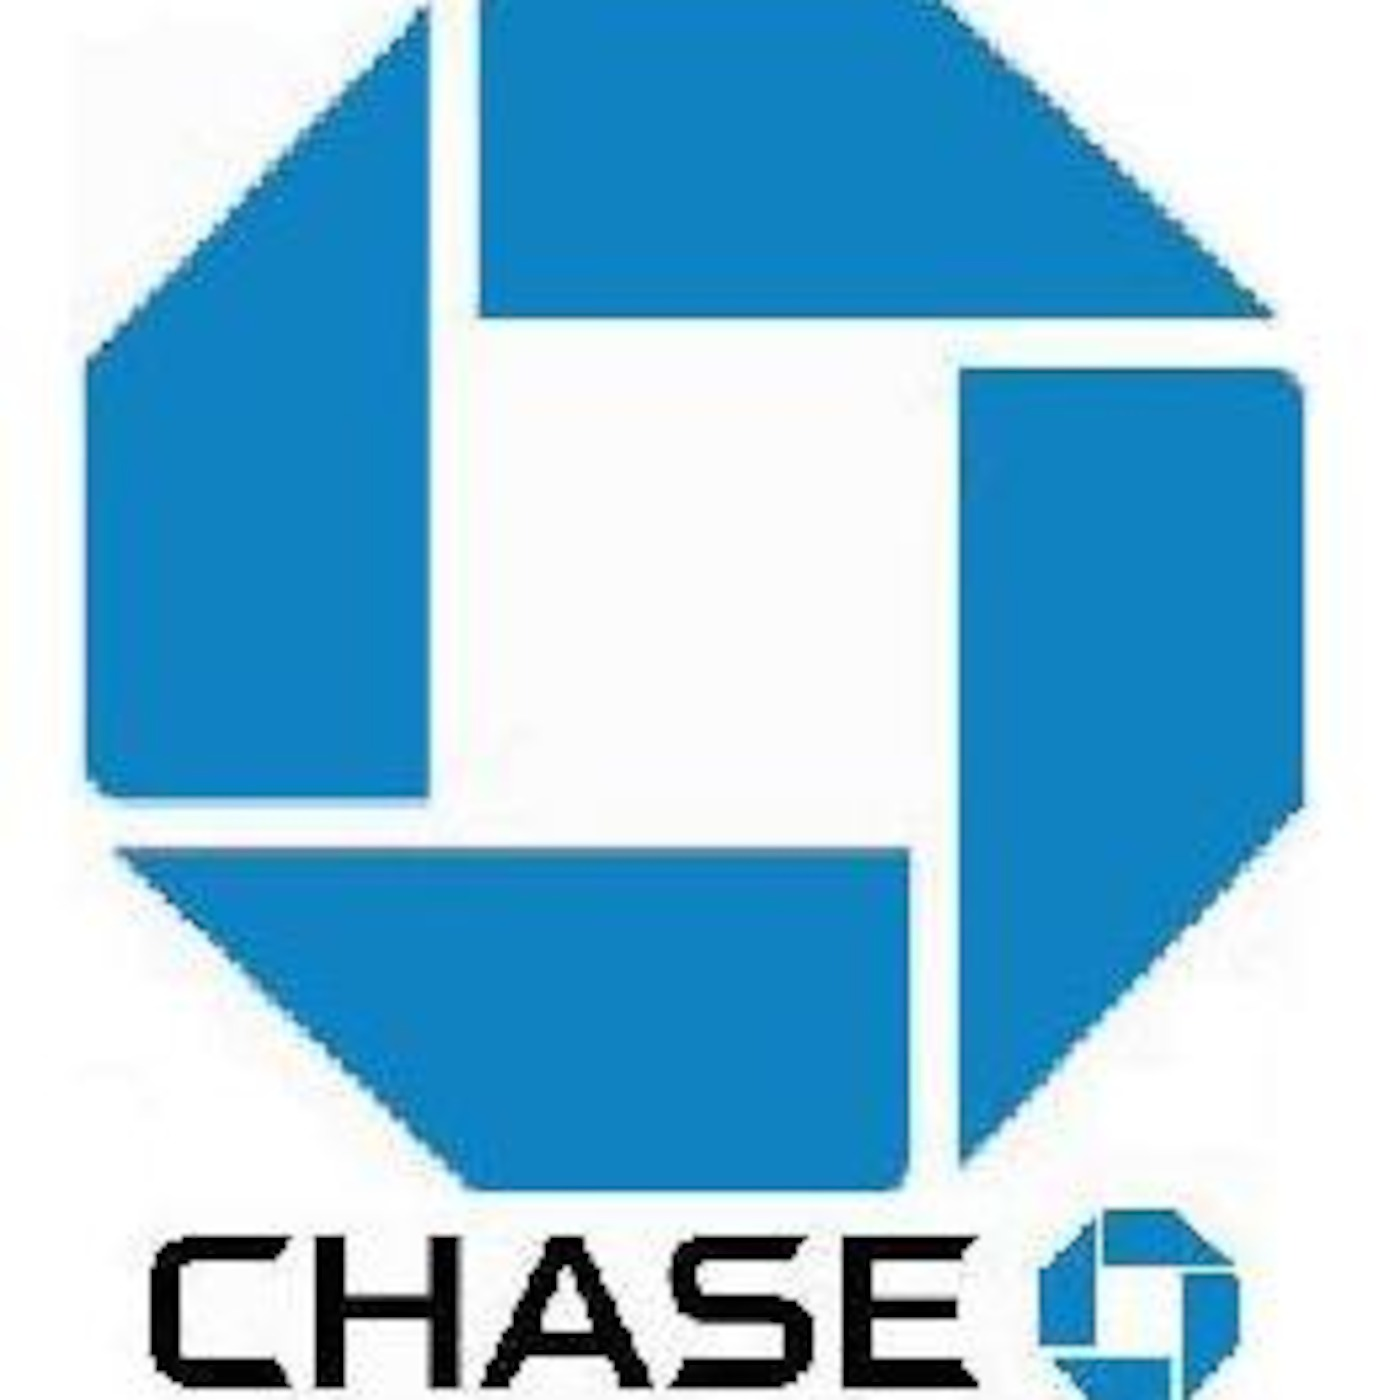 Chase Bank Wikipedia The Free Encyclopedia Autos Post